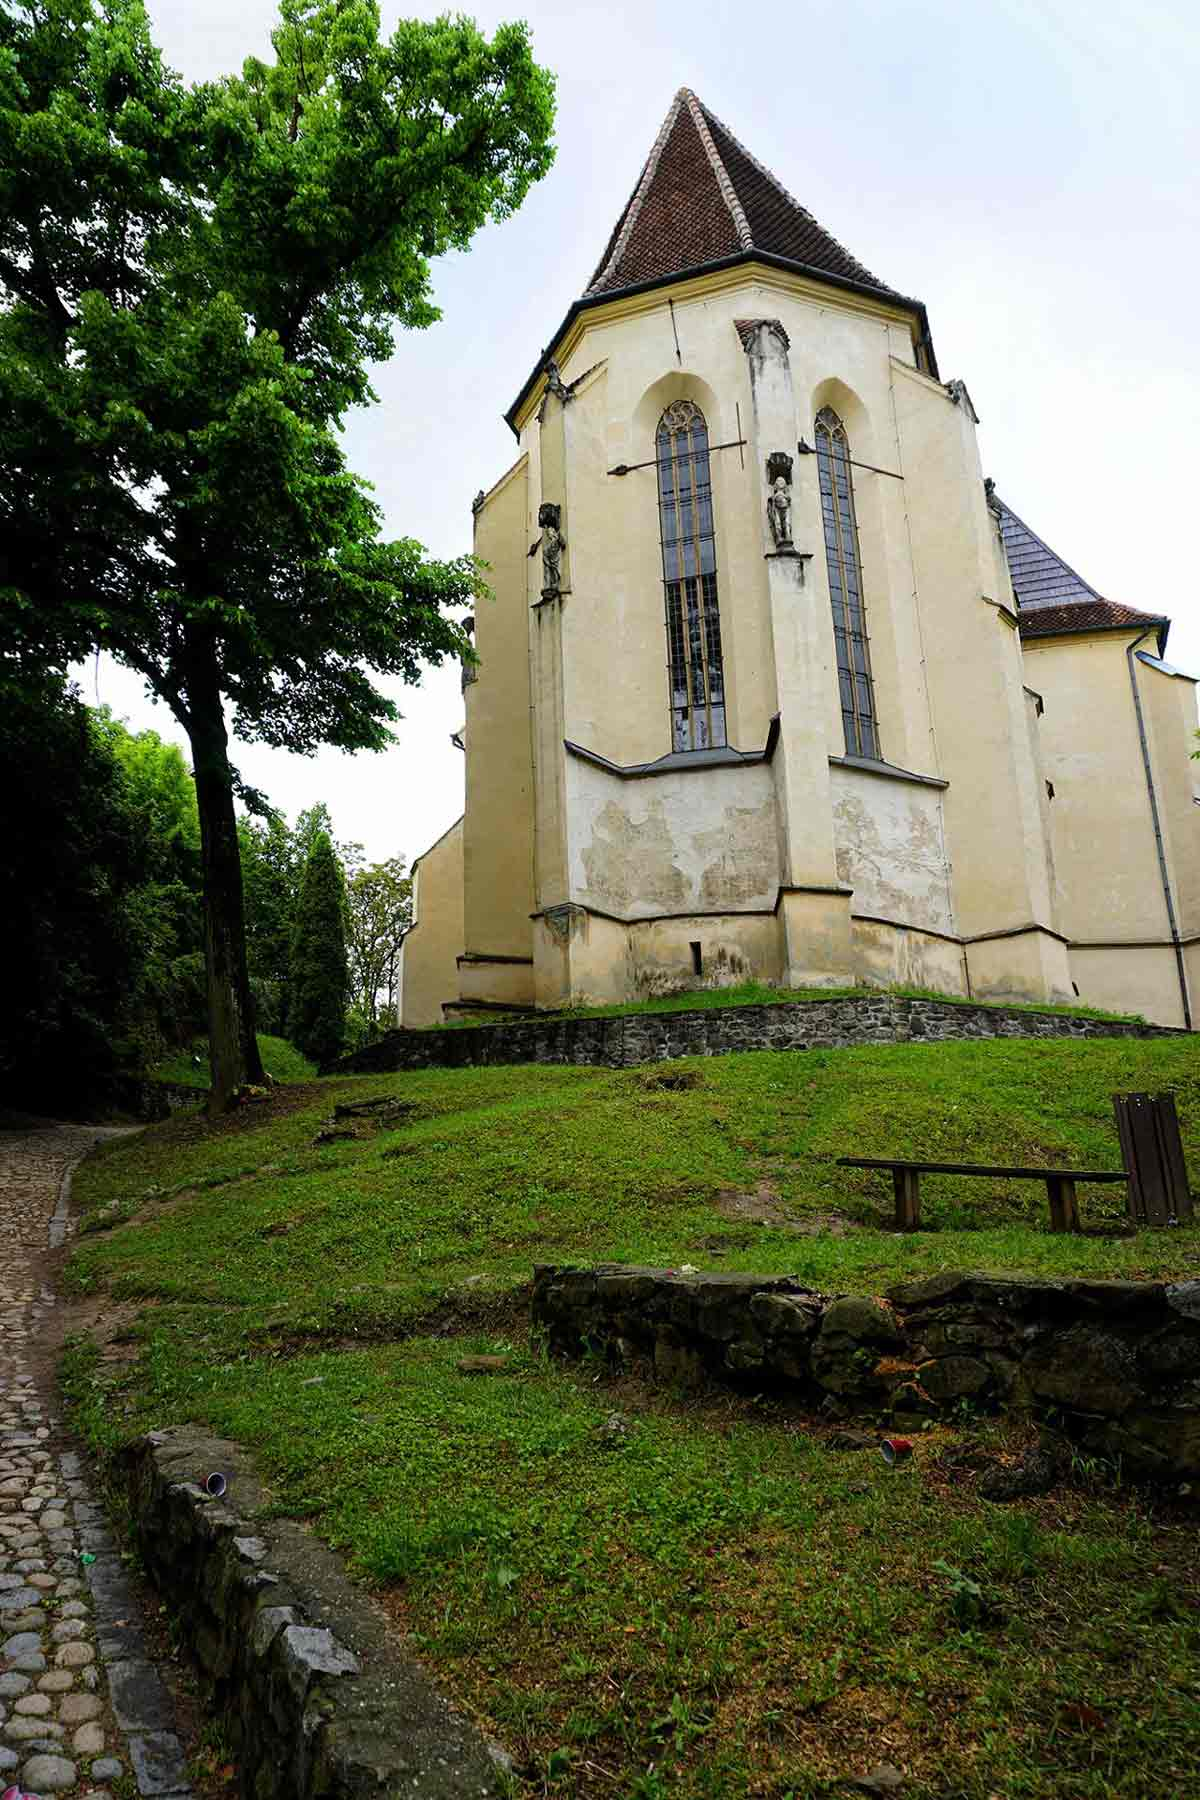 The church on the hill in Sighisoara.